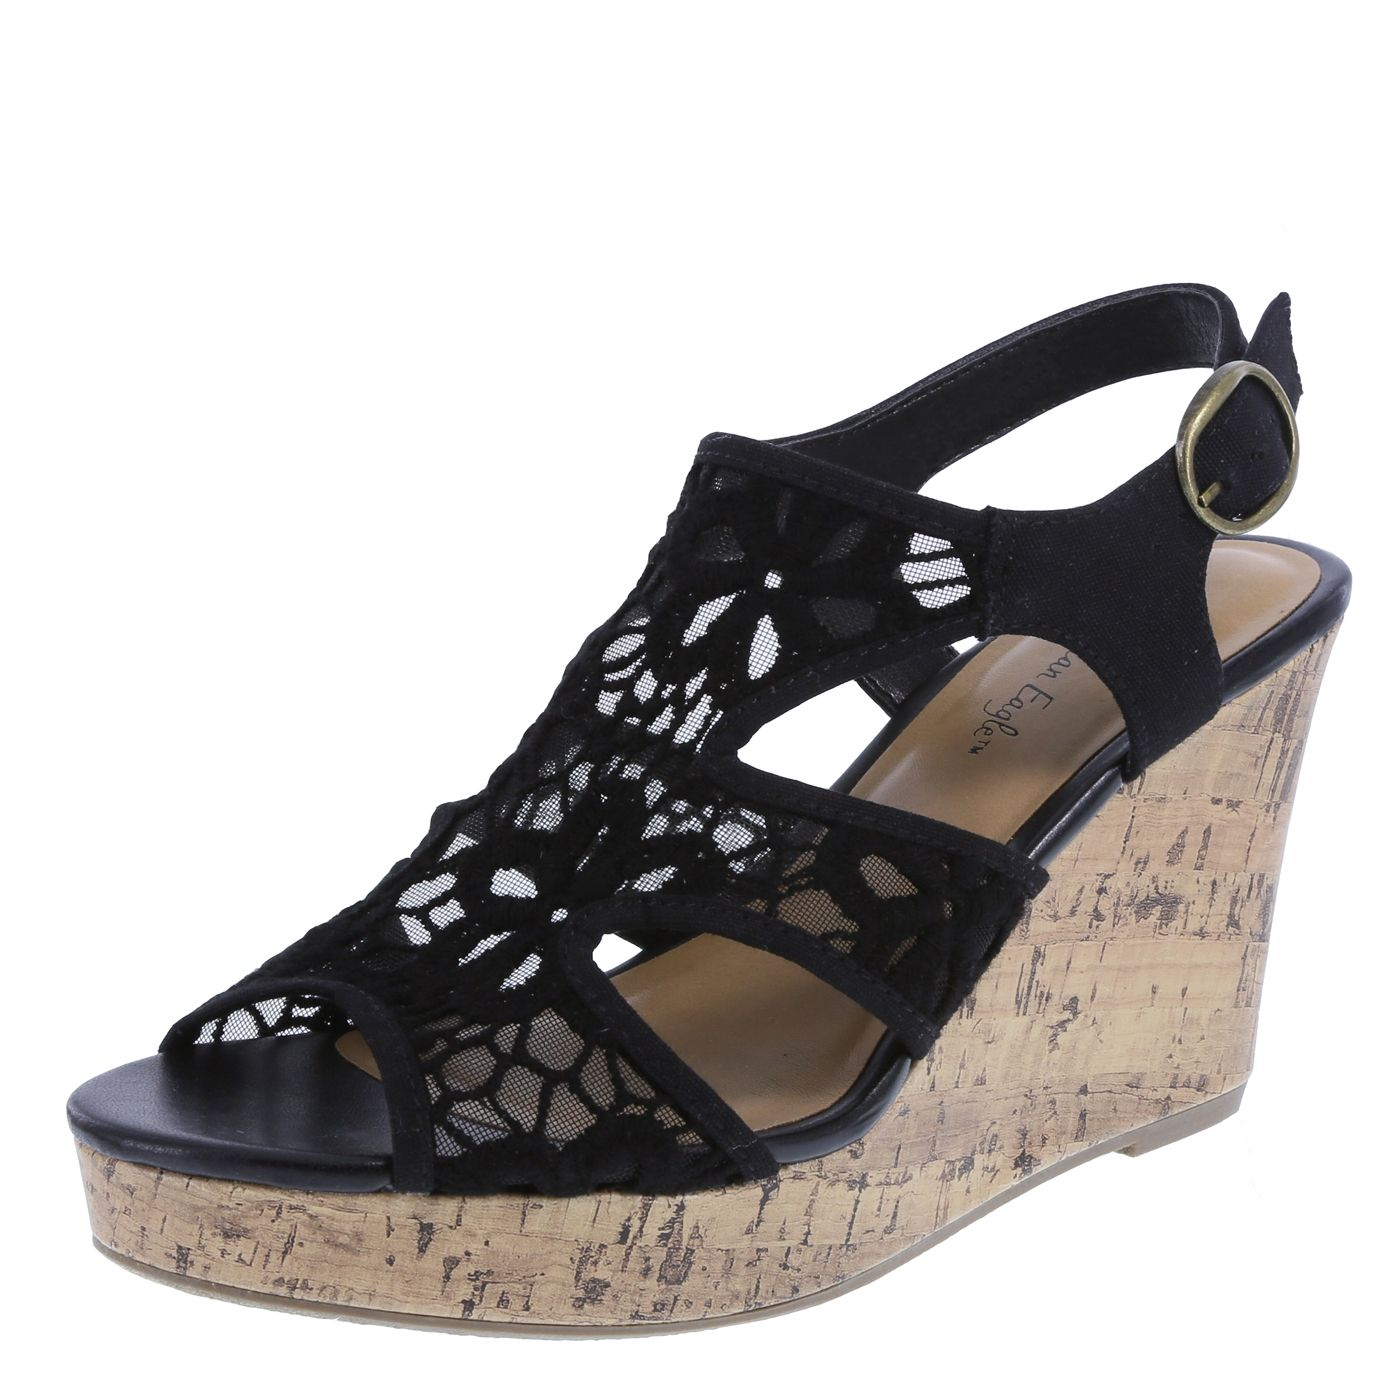 Roller shoes payless - Add A Beautiful Touch To Any Of Your Casual Looks With The Resort Wedge From American